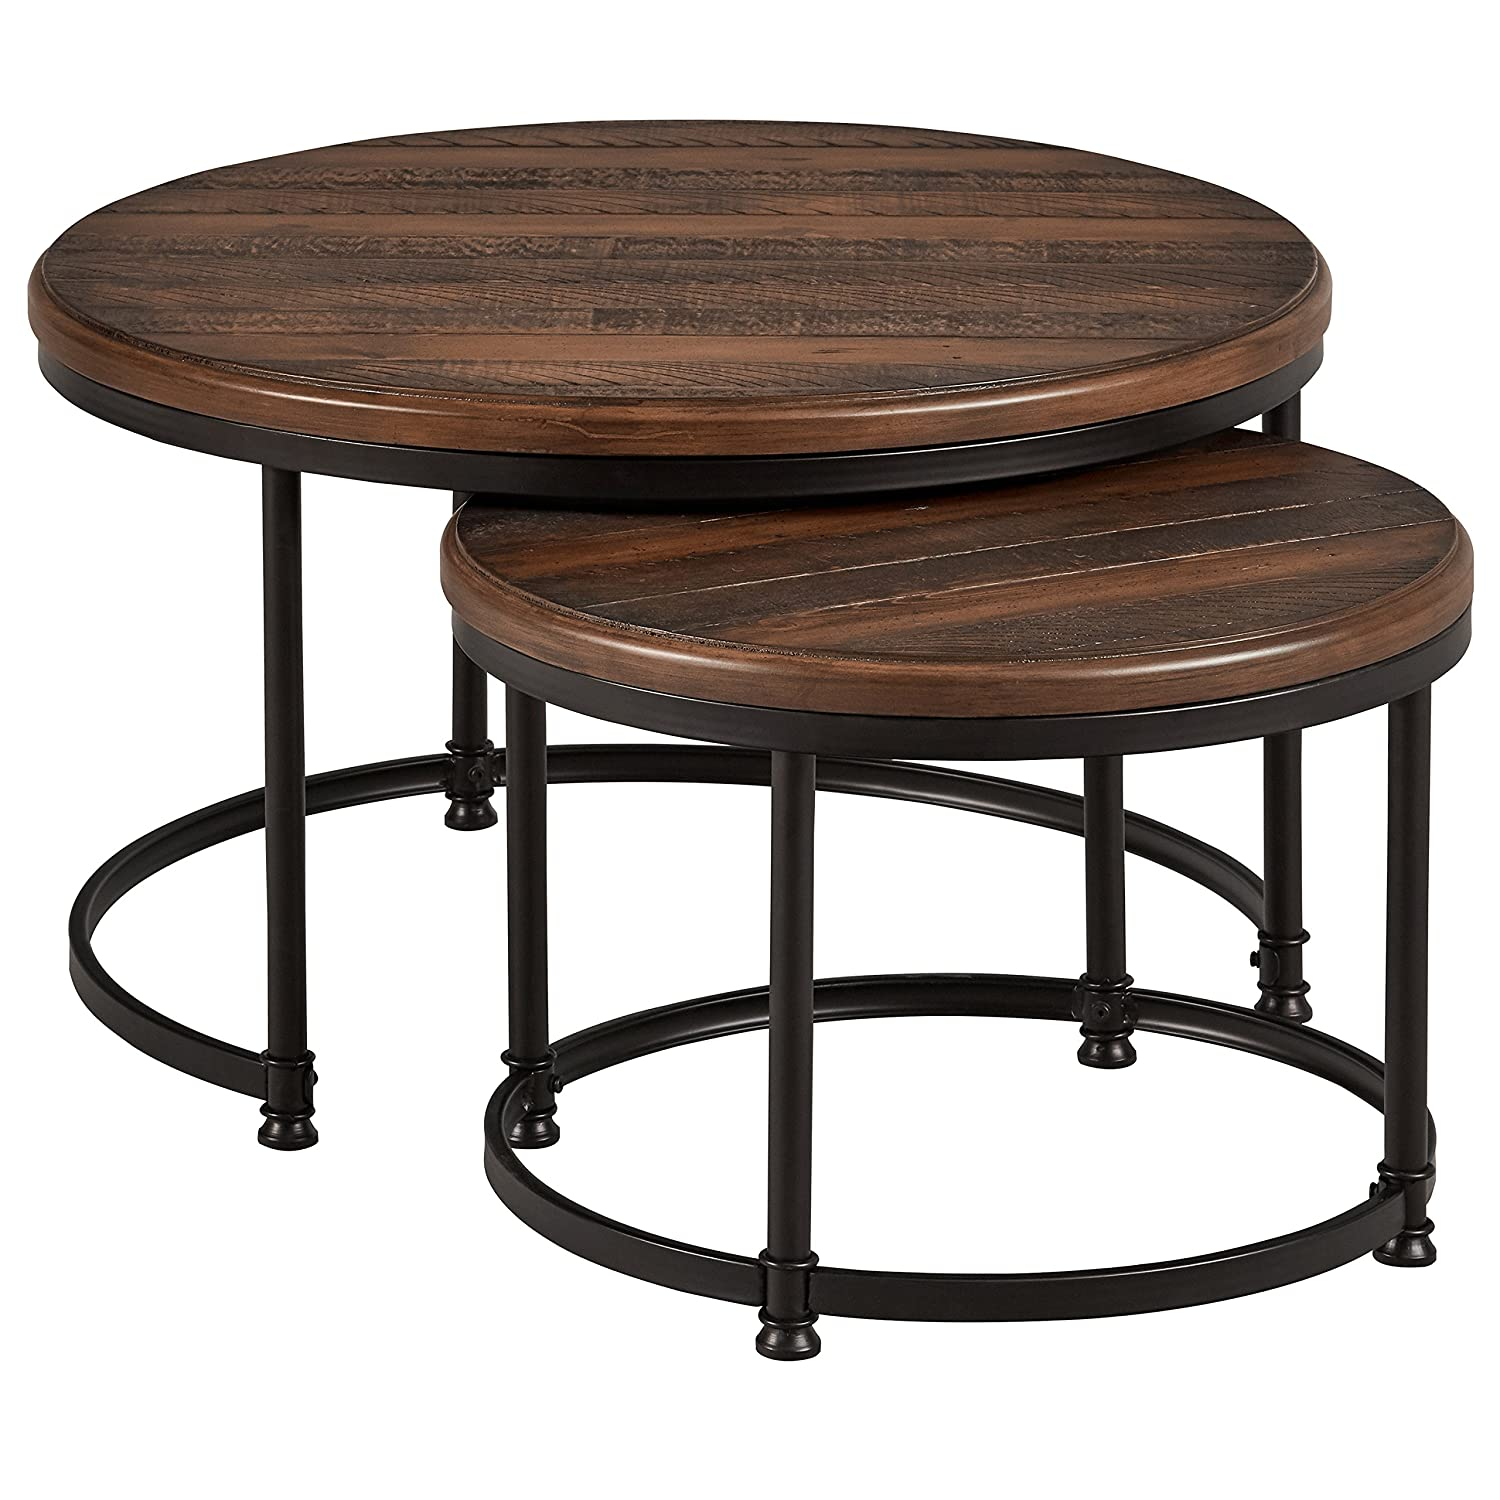 "Stone & Beam Wood and Metal Nesting Tables, 34""W, Pine"